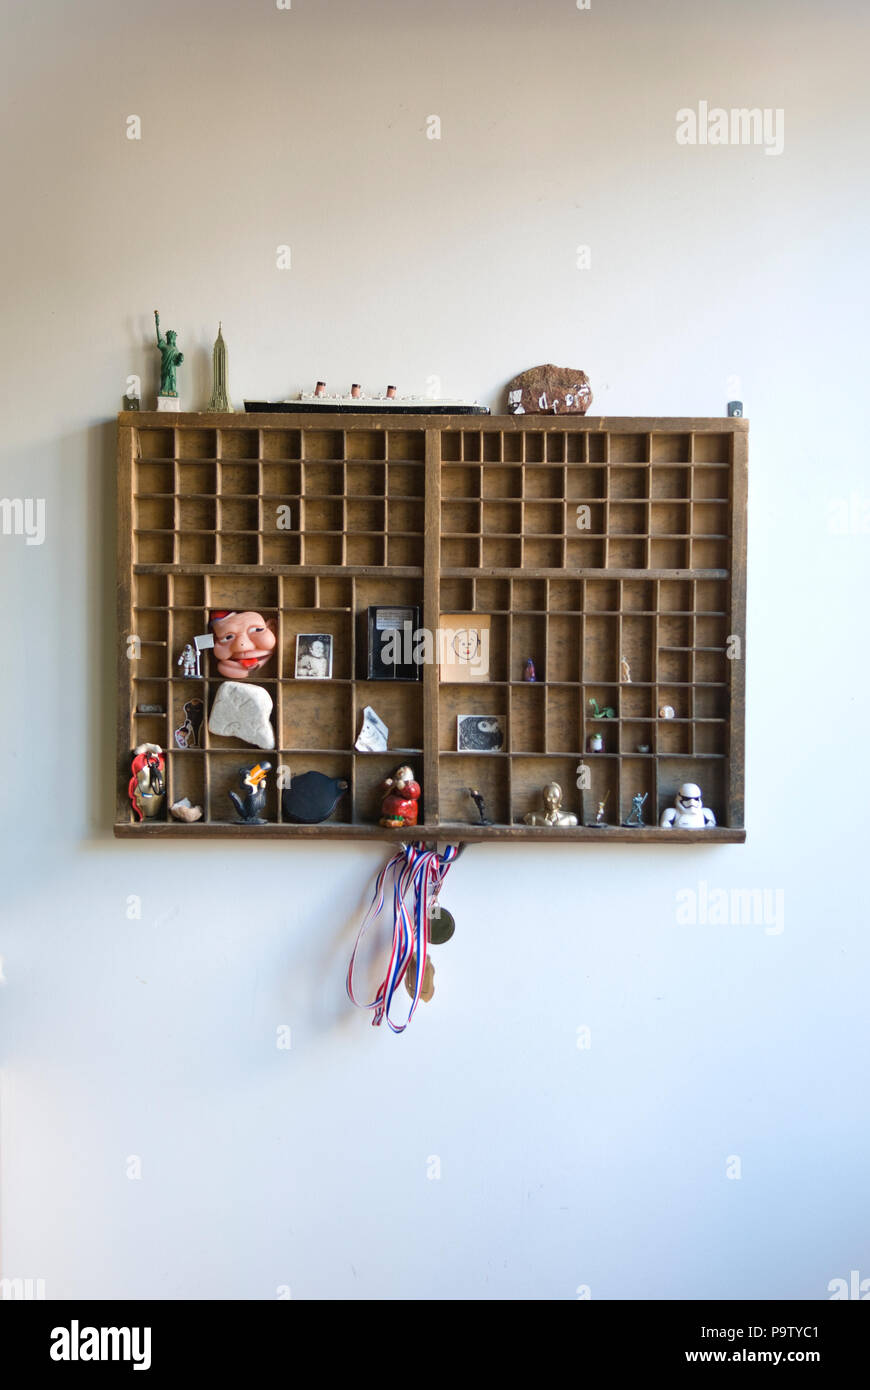 interior shot of old printers drawer on wall of kid's bedroom filled with an eclectic range of objects, including old toy liner and figurines - Stock Image